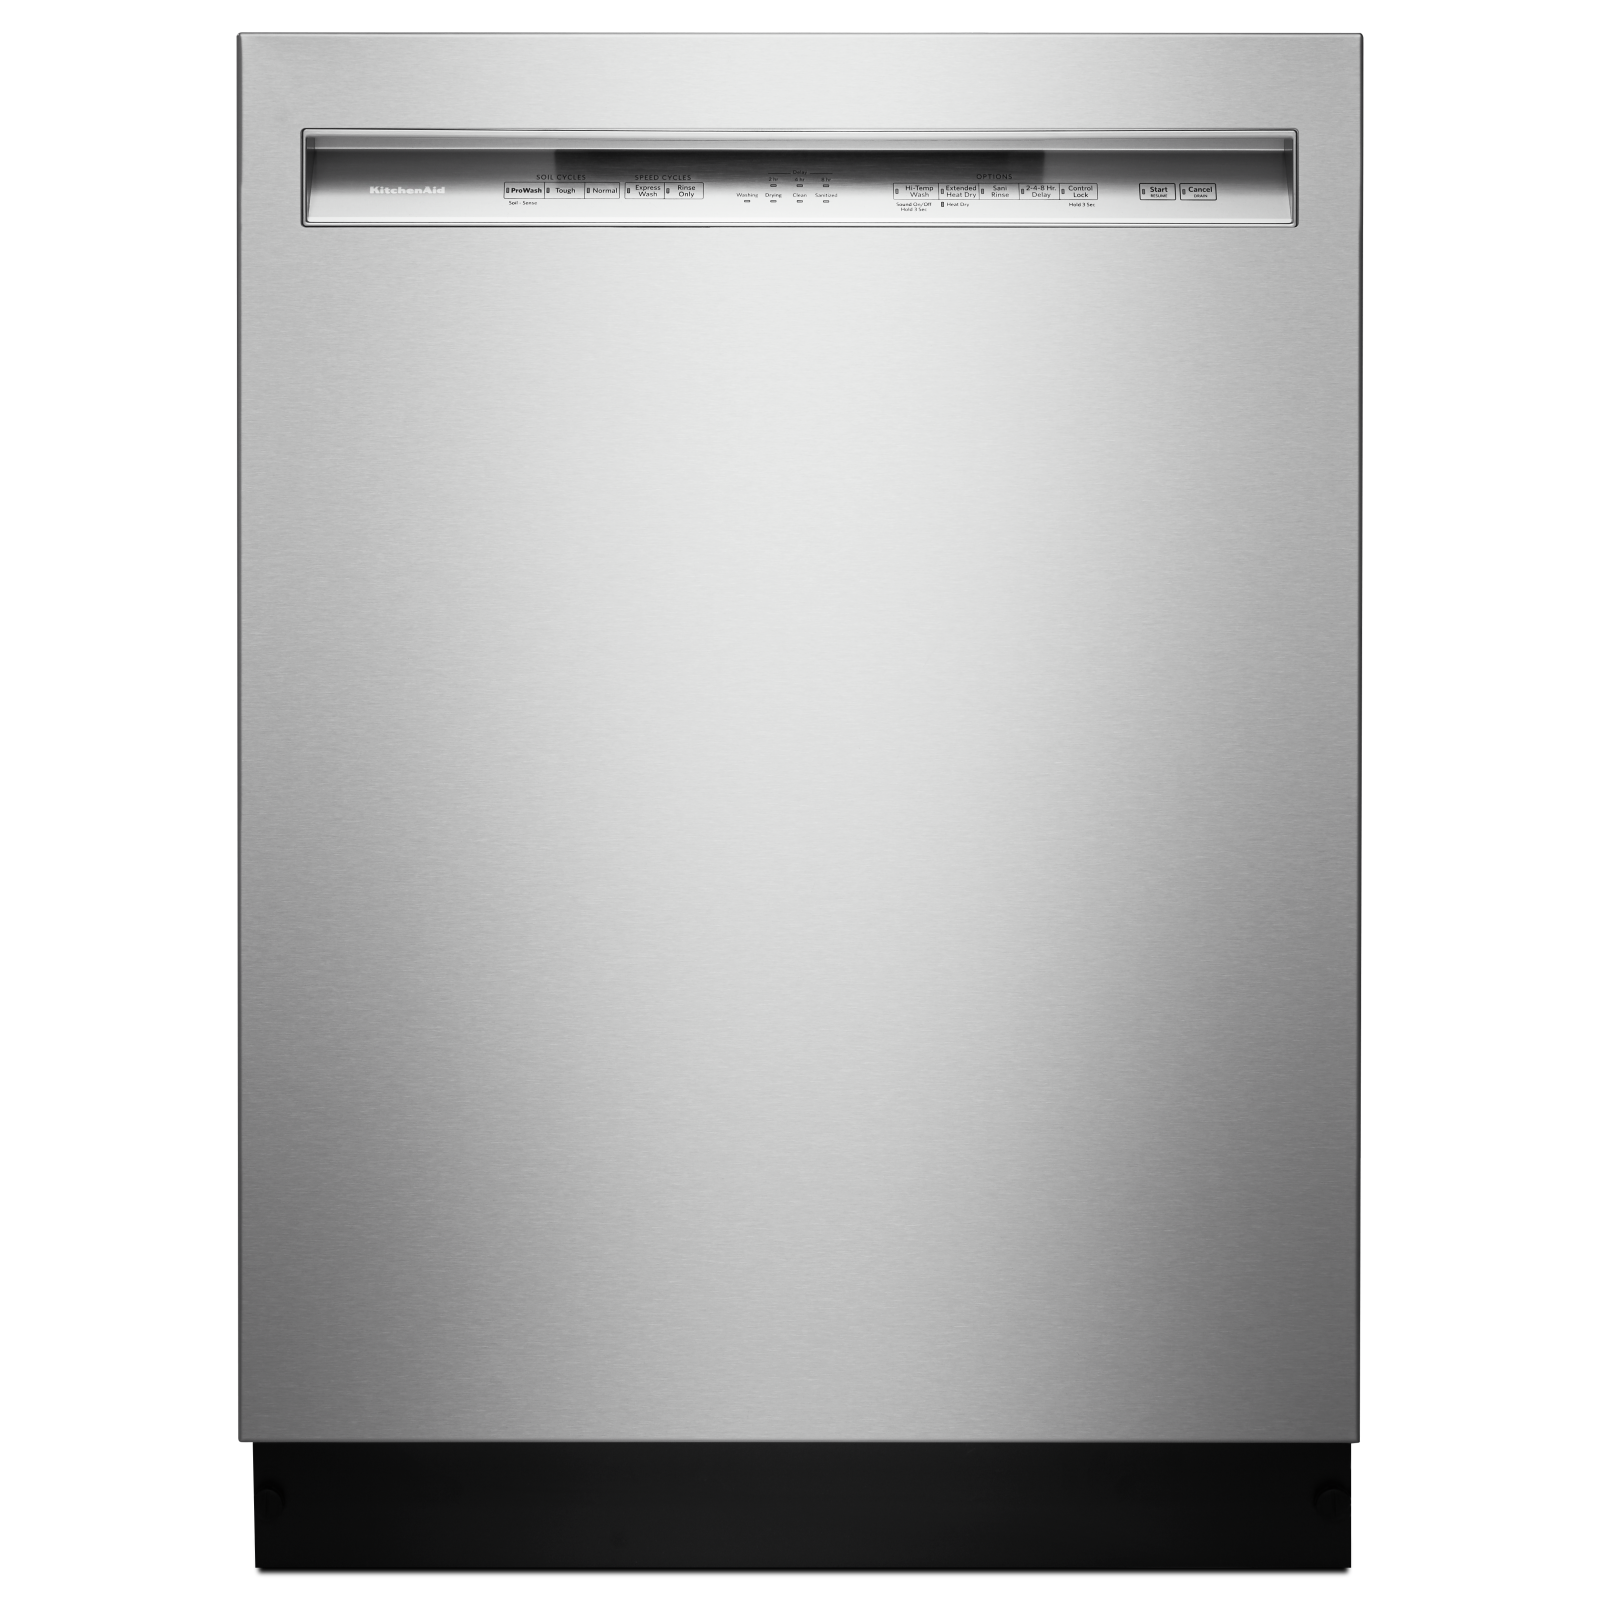 KitchenAid Dishwasher 24 KDFE104H